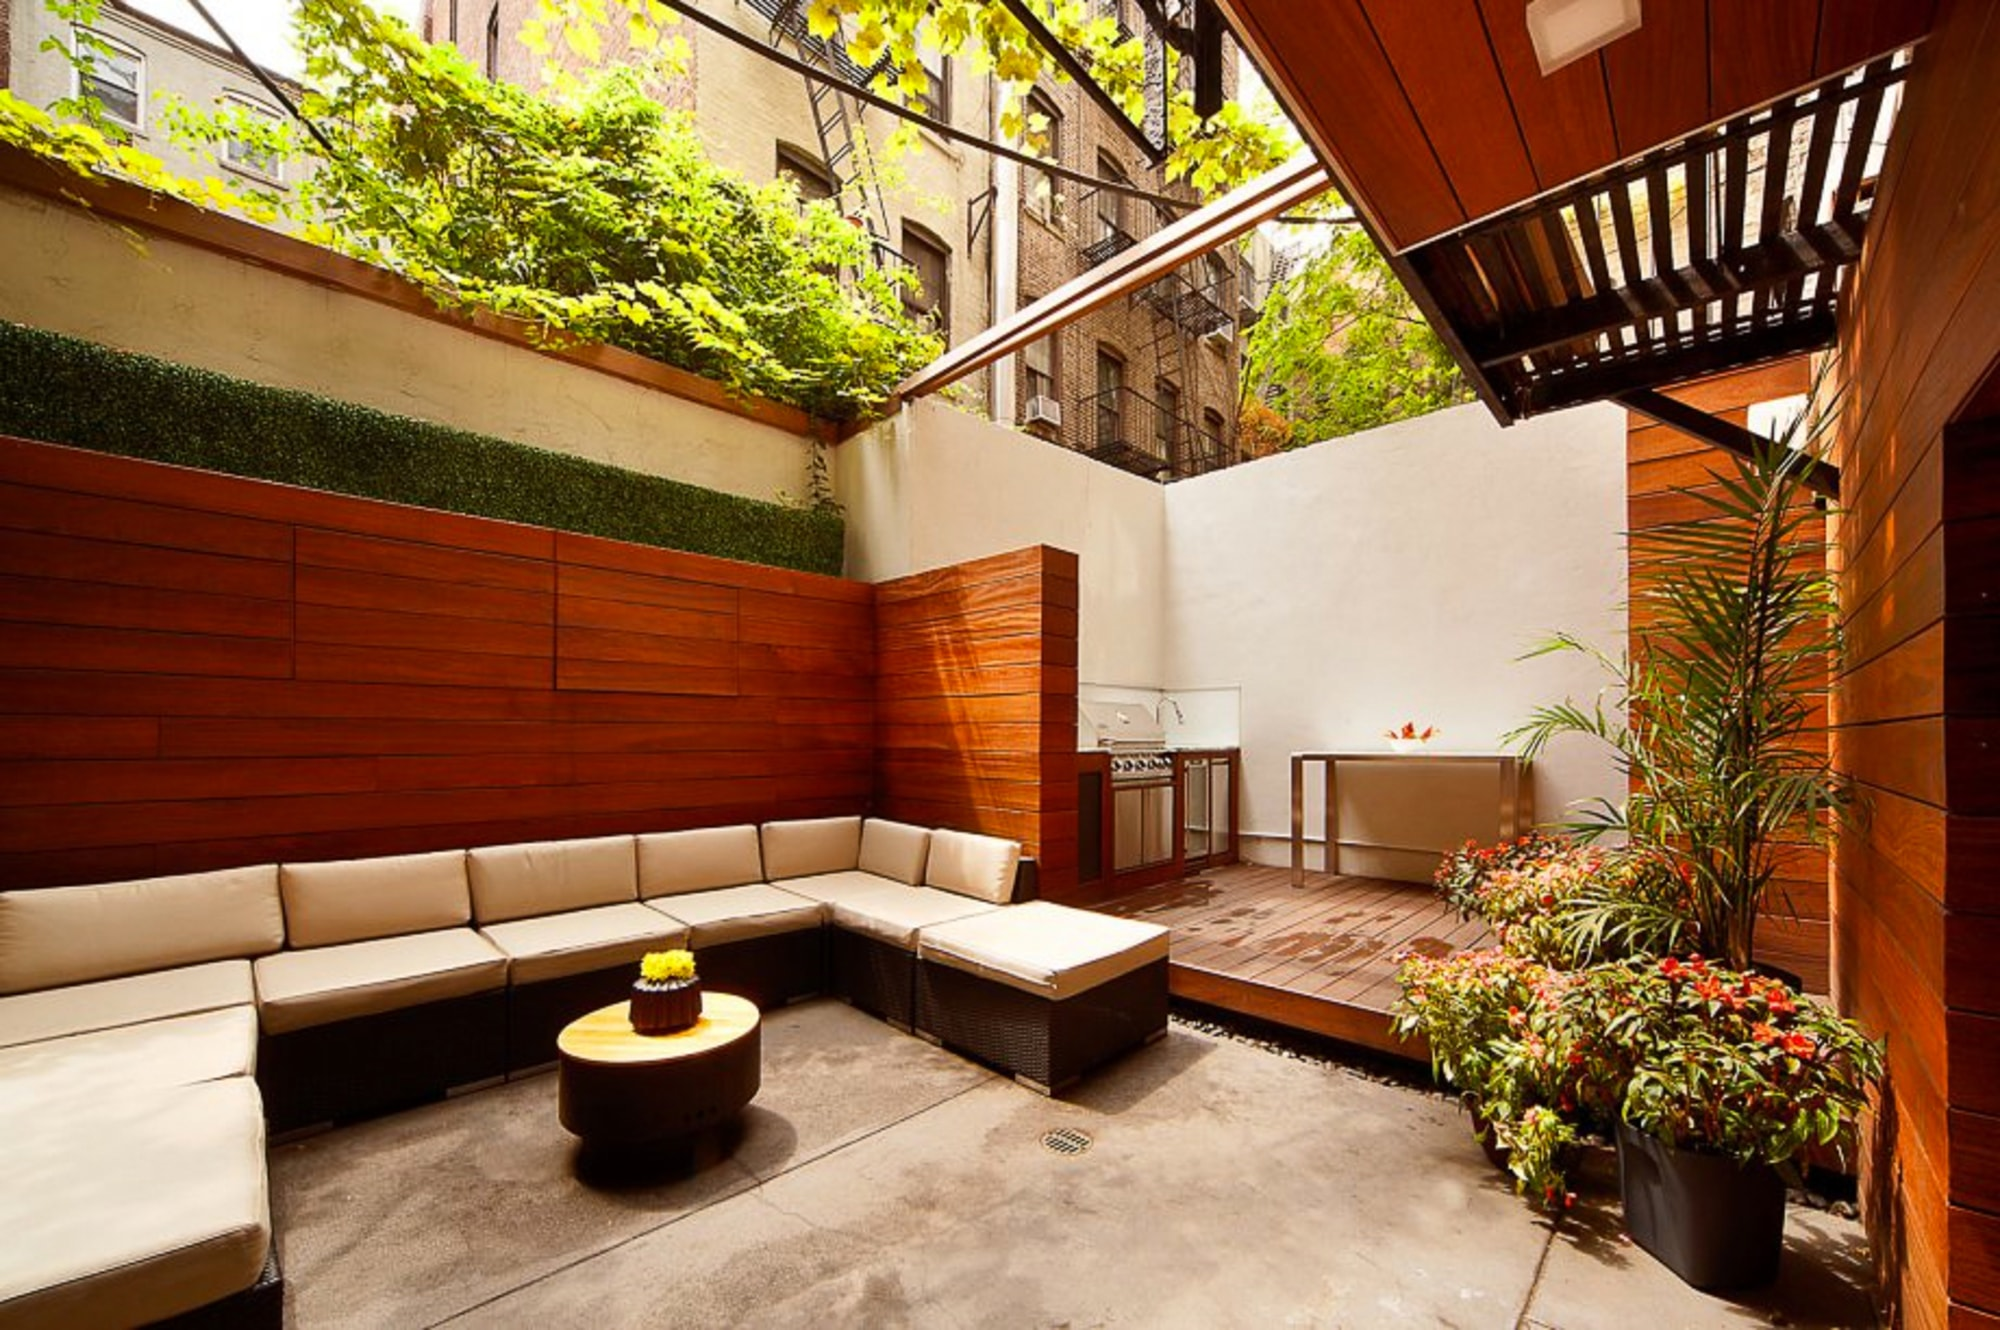 Outdoor seating area with wood panels and potted plants